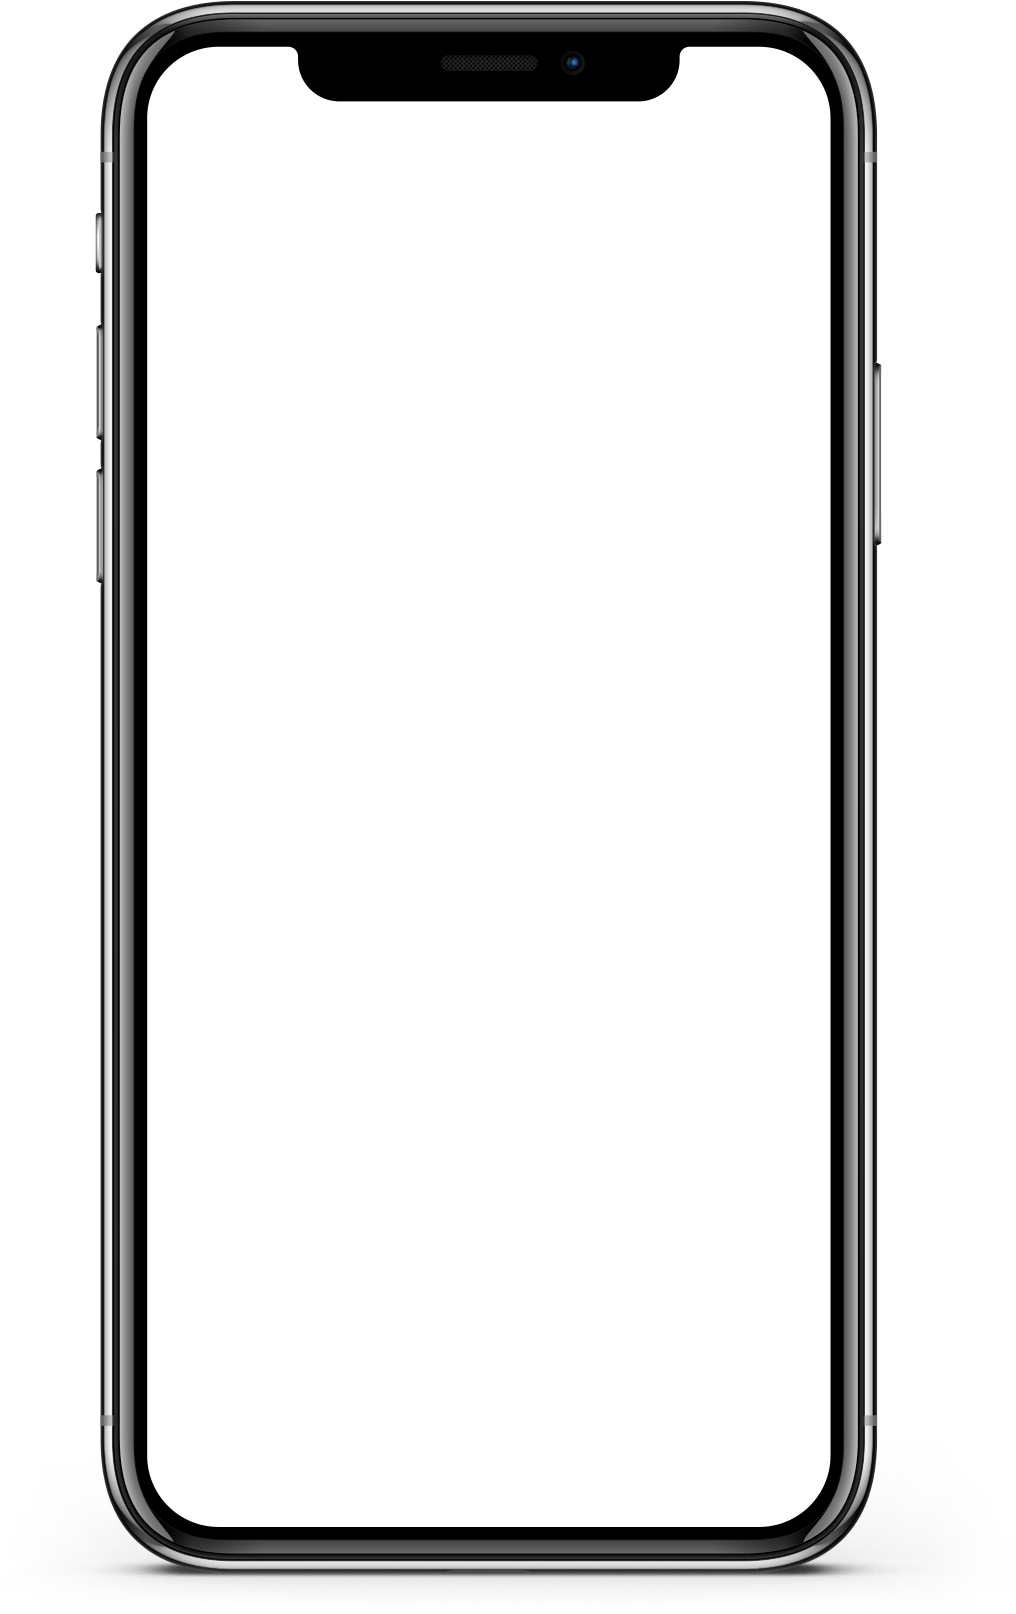 10+ Transparent Download Gambar Handphone Png